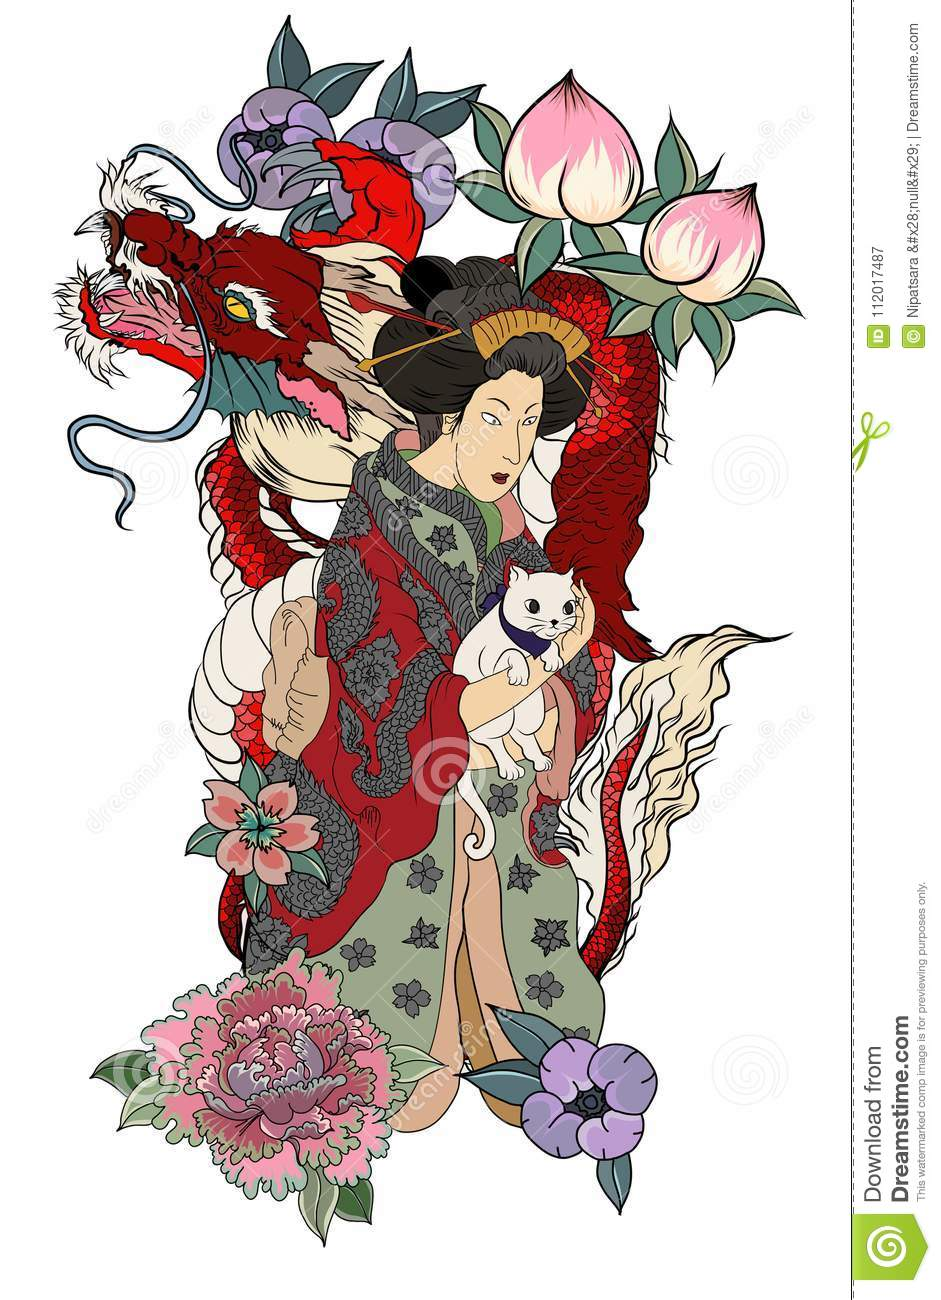 Traditional Japanese Tattoo Design For Back Body Japanese Women In